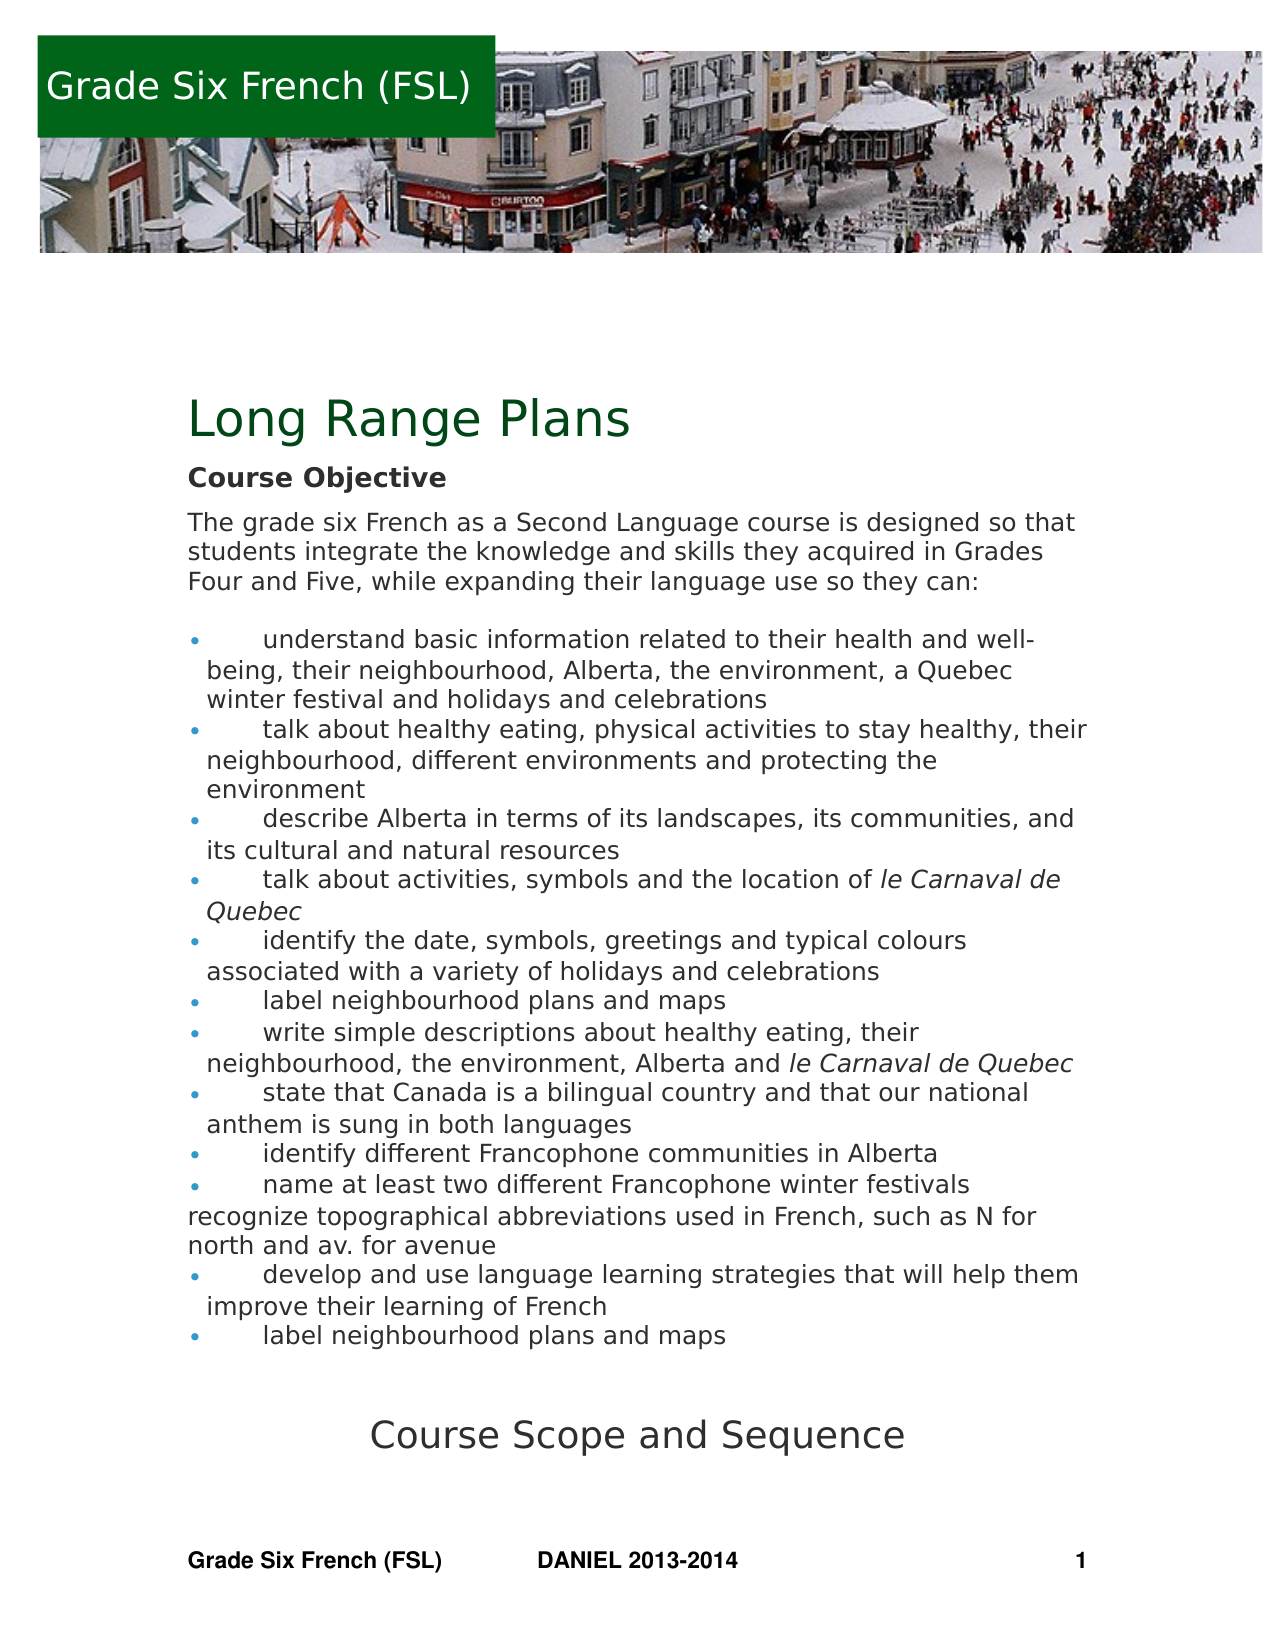 Grade 6 FSL Long Range Plans Resource Preview